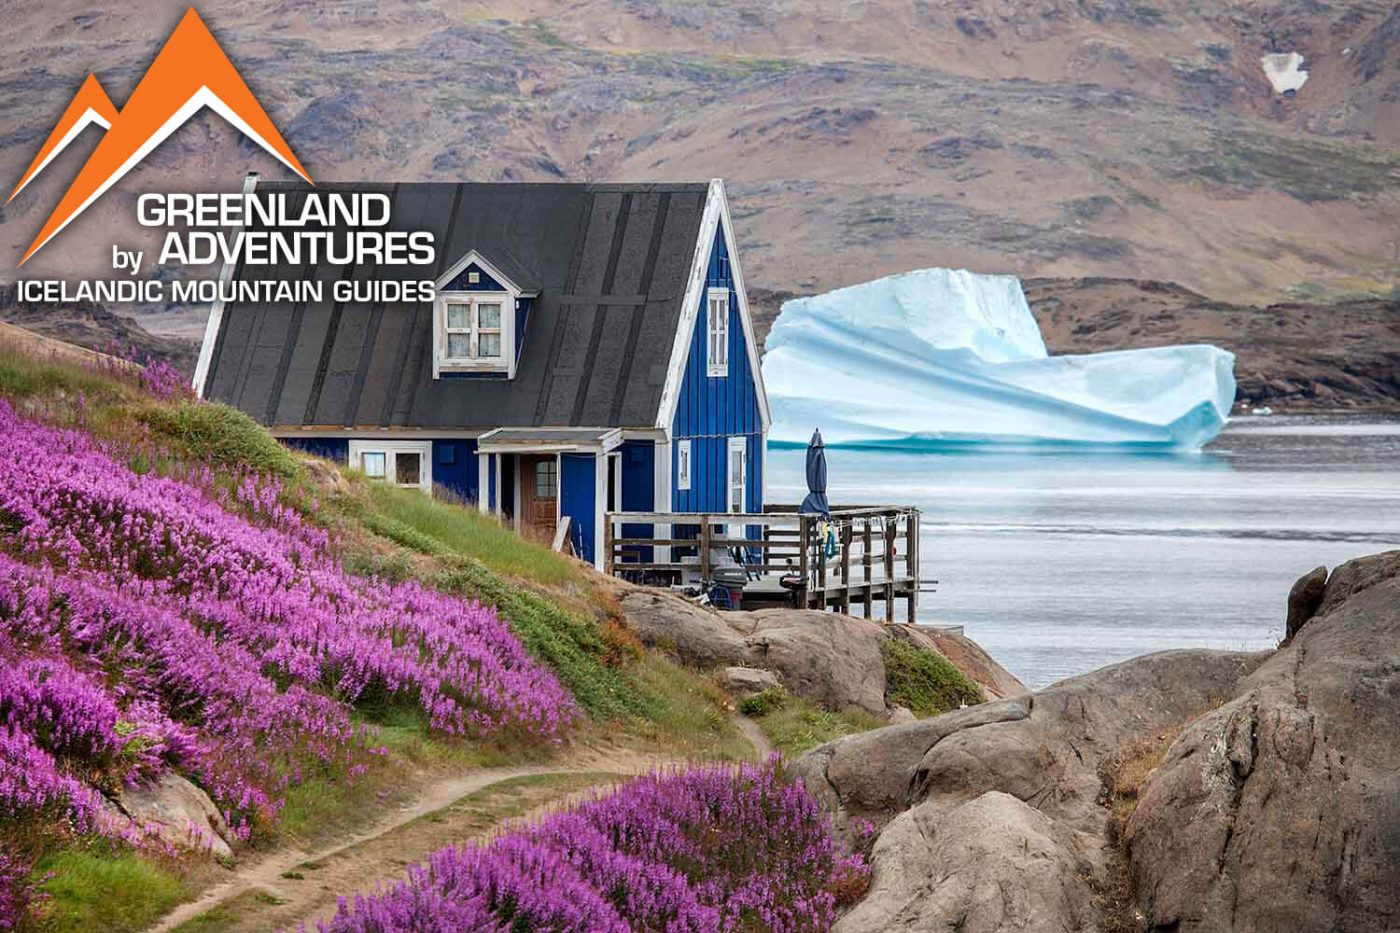 Icelandic Mountain Guides – Greenland Highlights